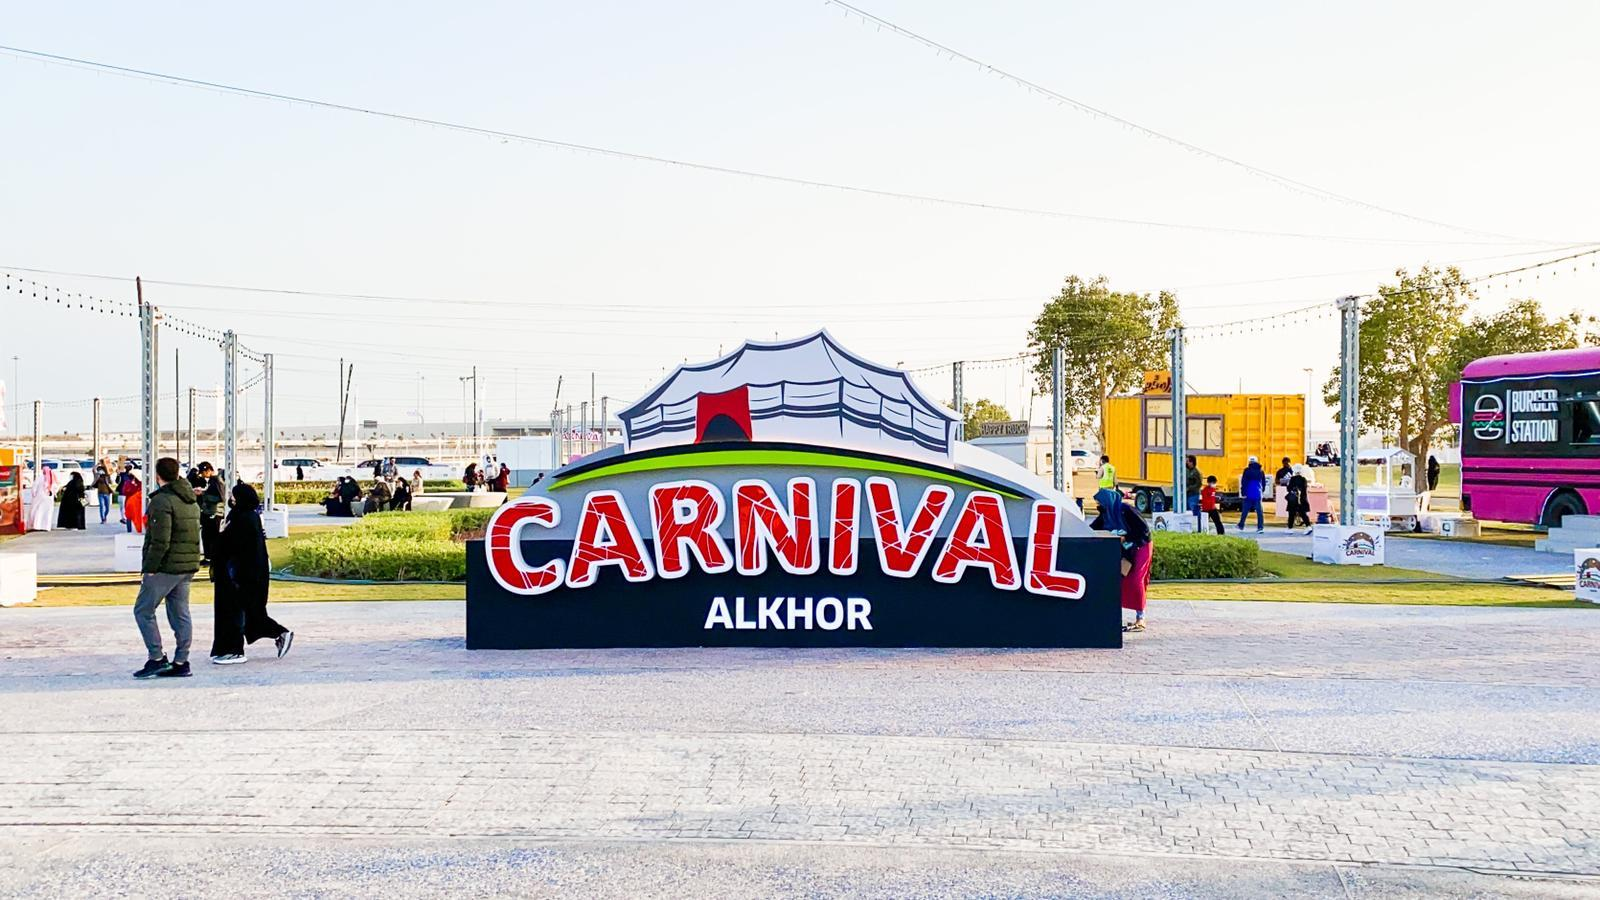 5 activities you can enjoy at the Al Khor Carnival Festival